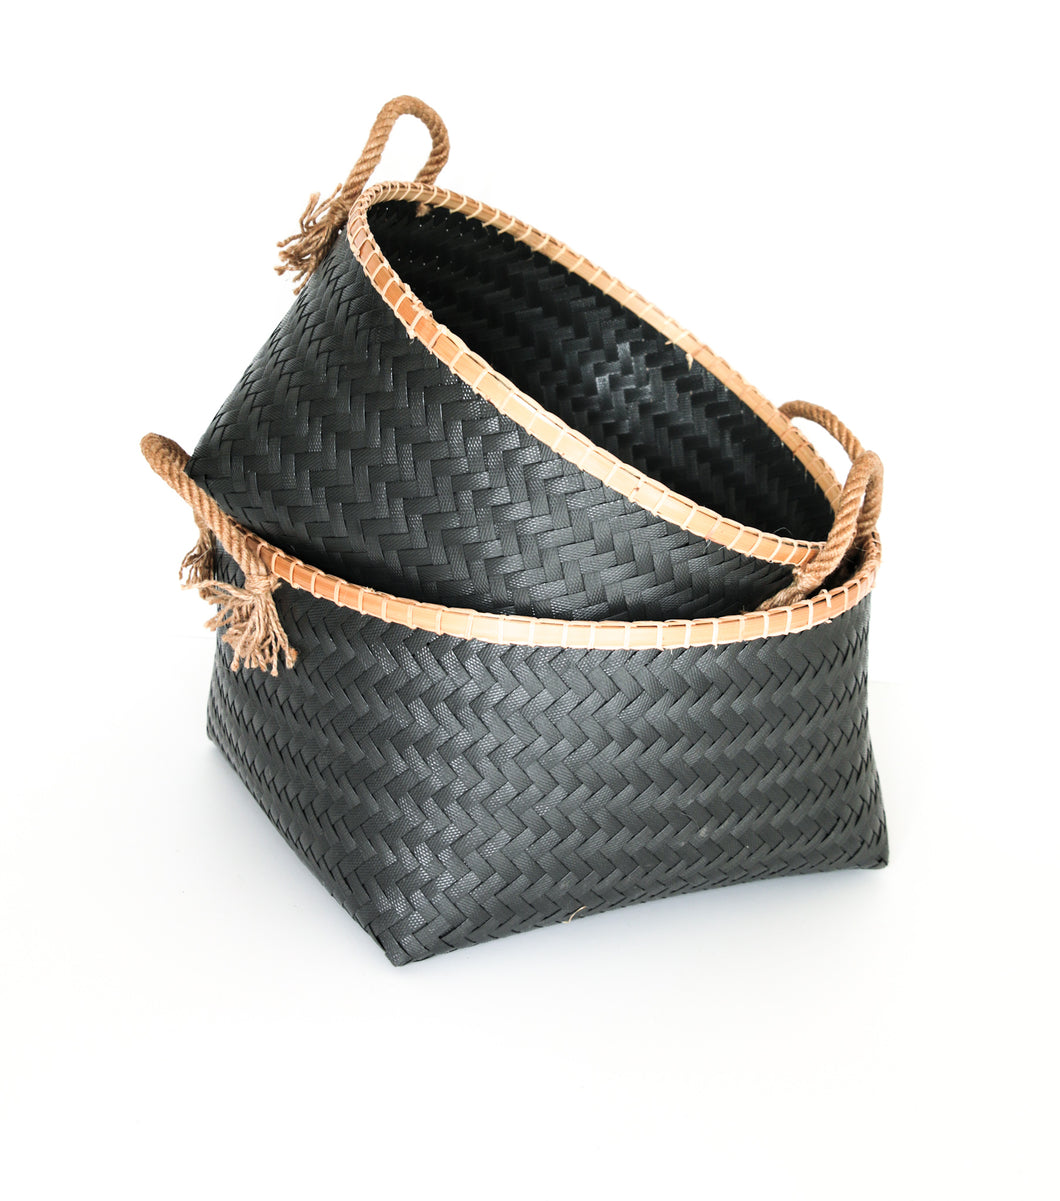 BLACK BAMBOO RIM BASKET SET 2